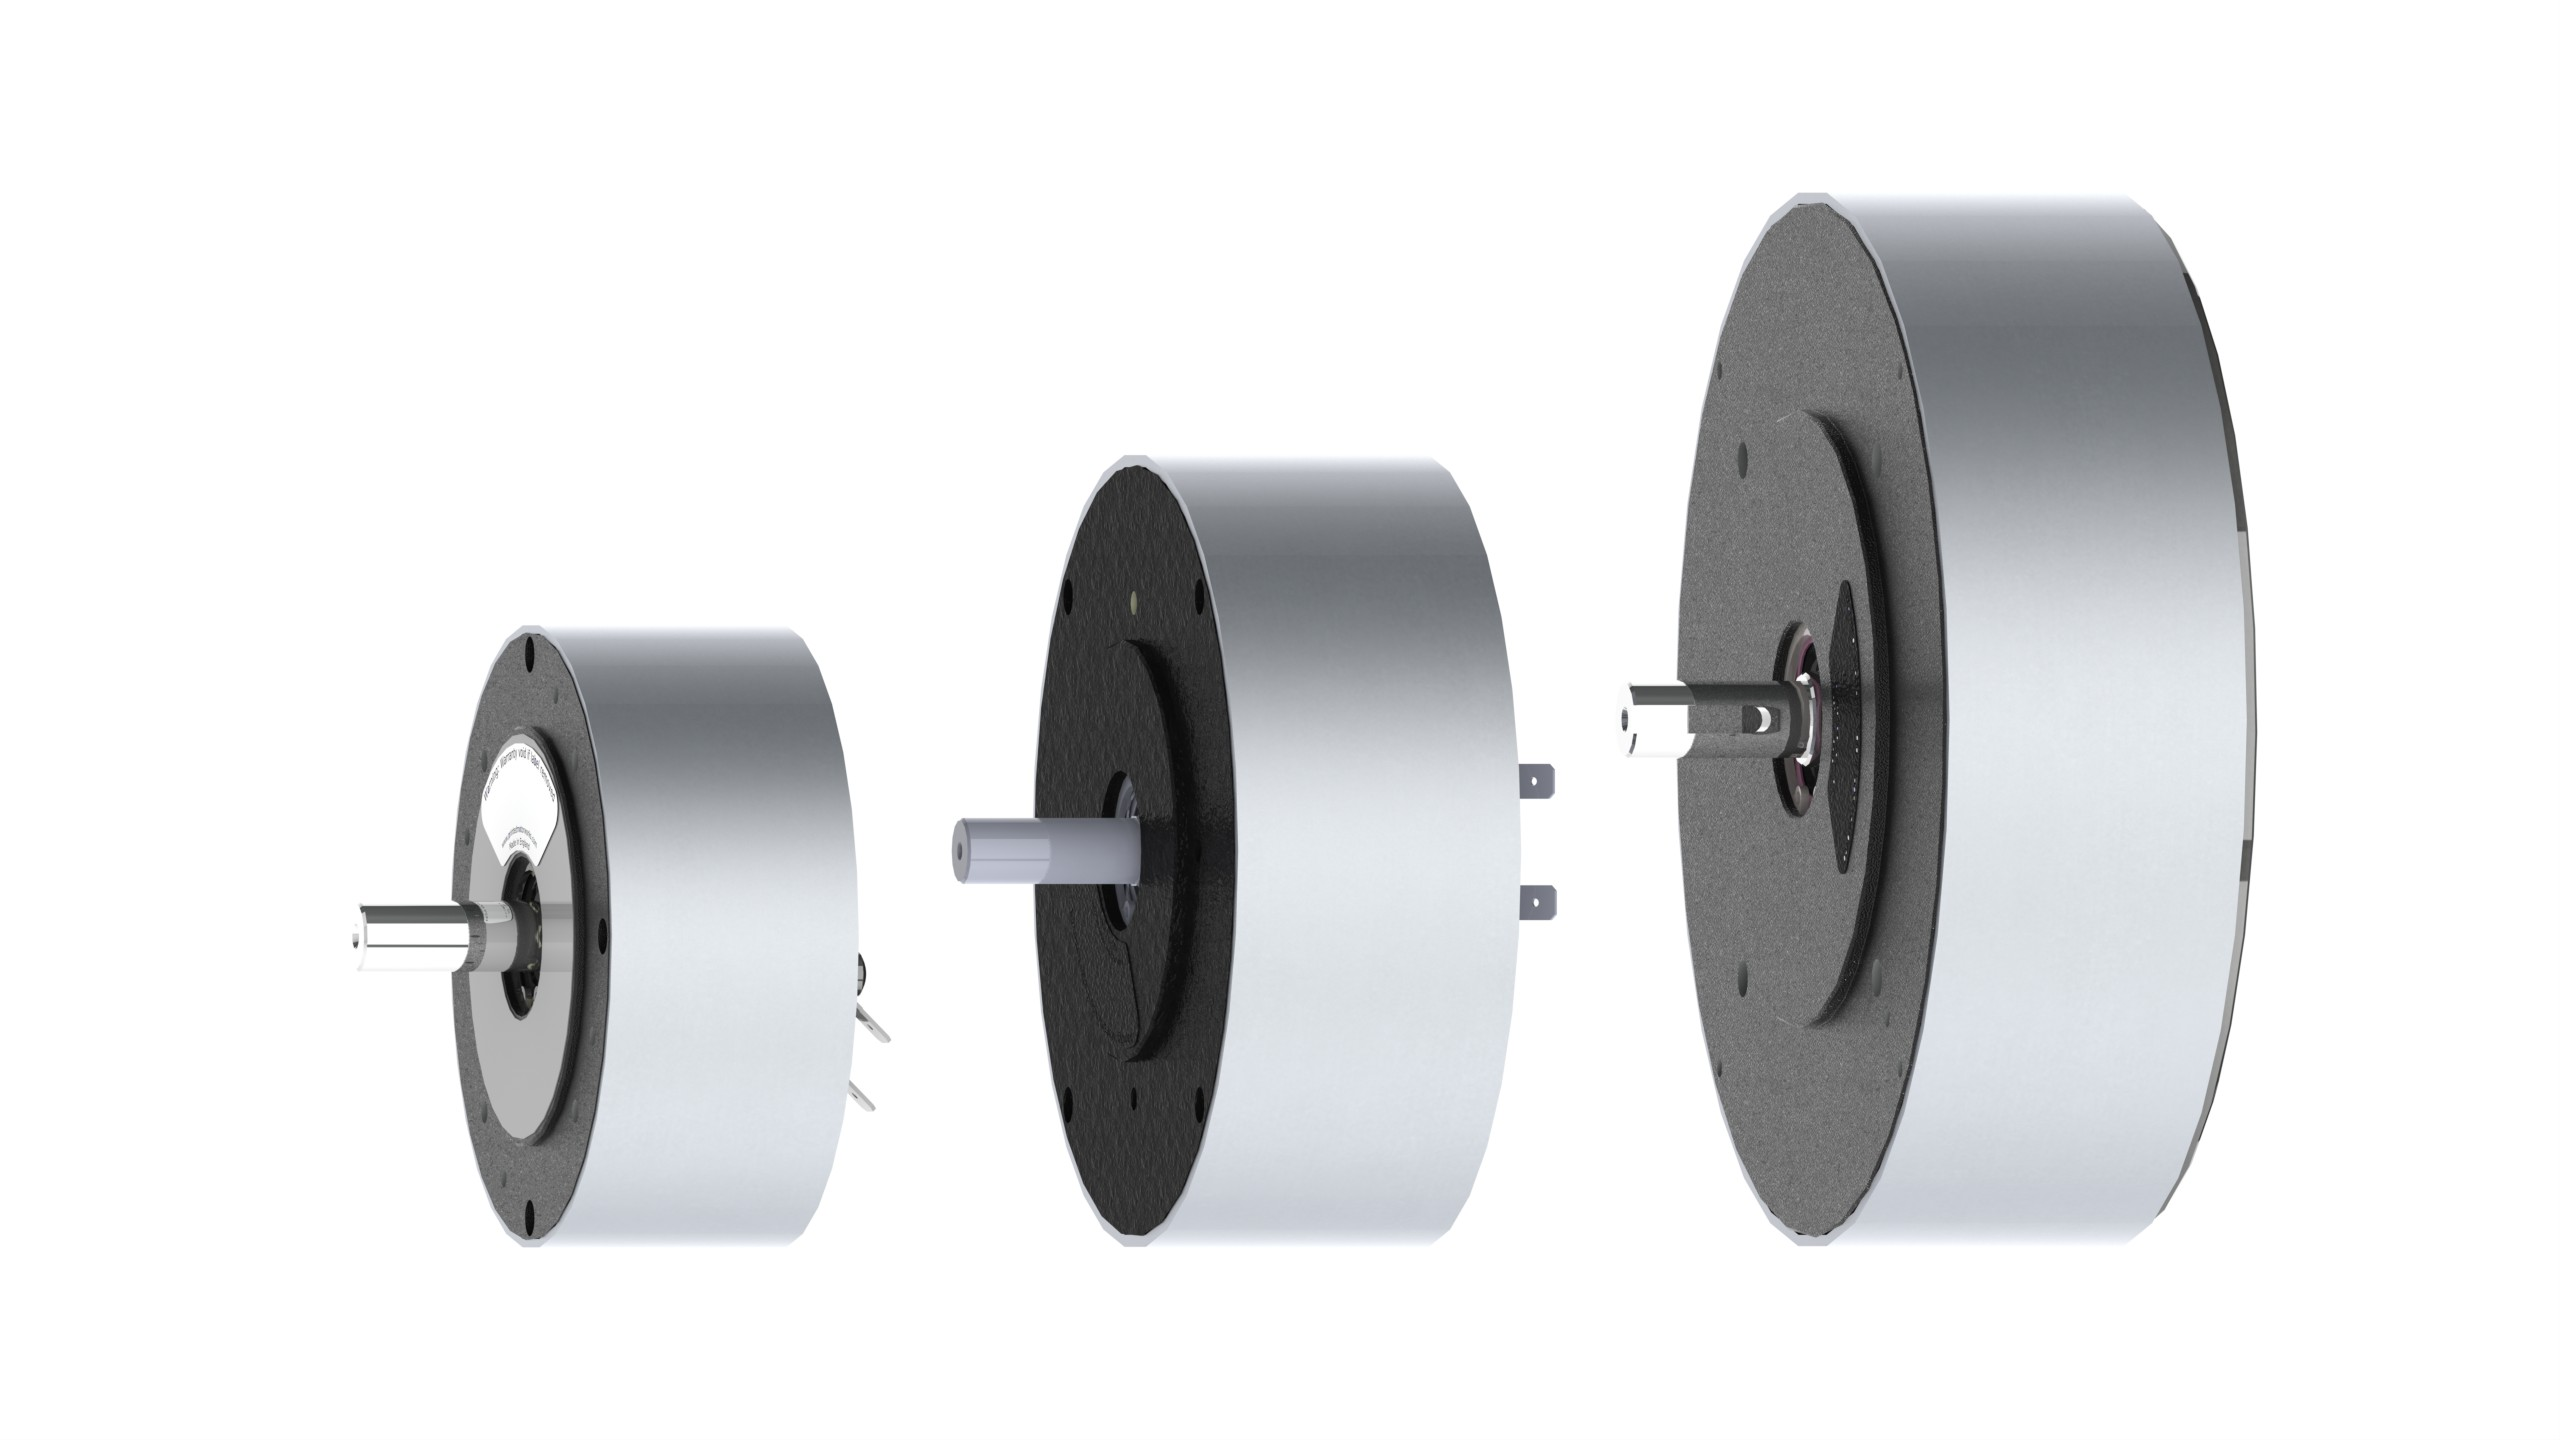 Brushless DC Motors Part I Construction And Operating Principles additionally Printed Motor Works Gp also Lynch motor furthermore Products moreover 251502303561. on brushed electric motor